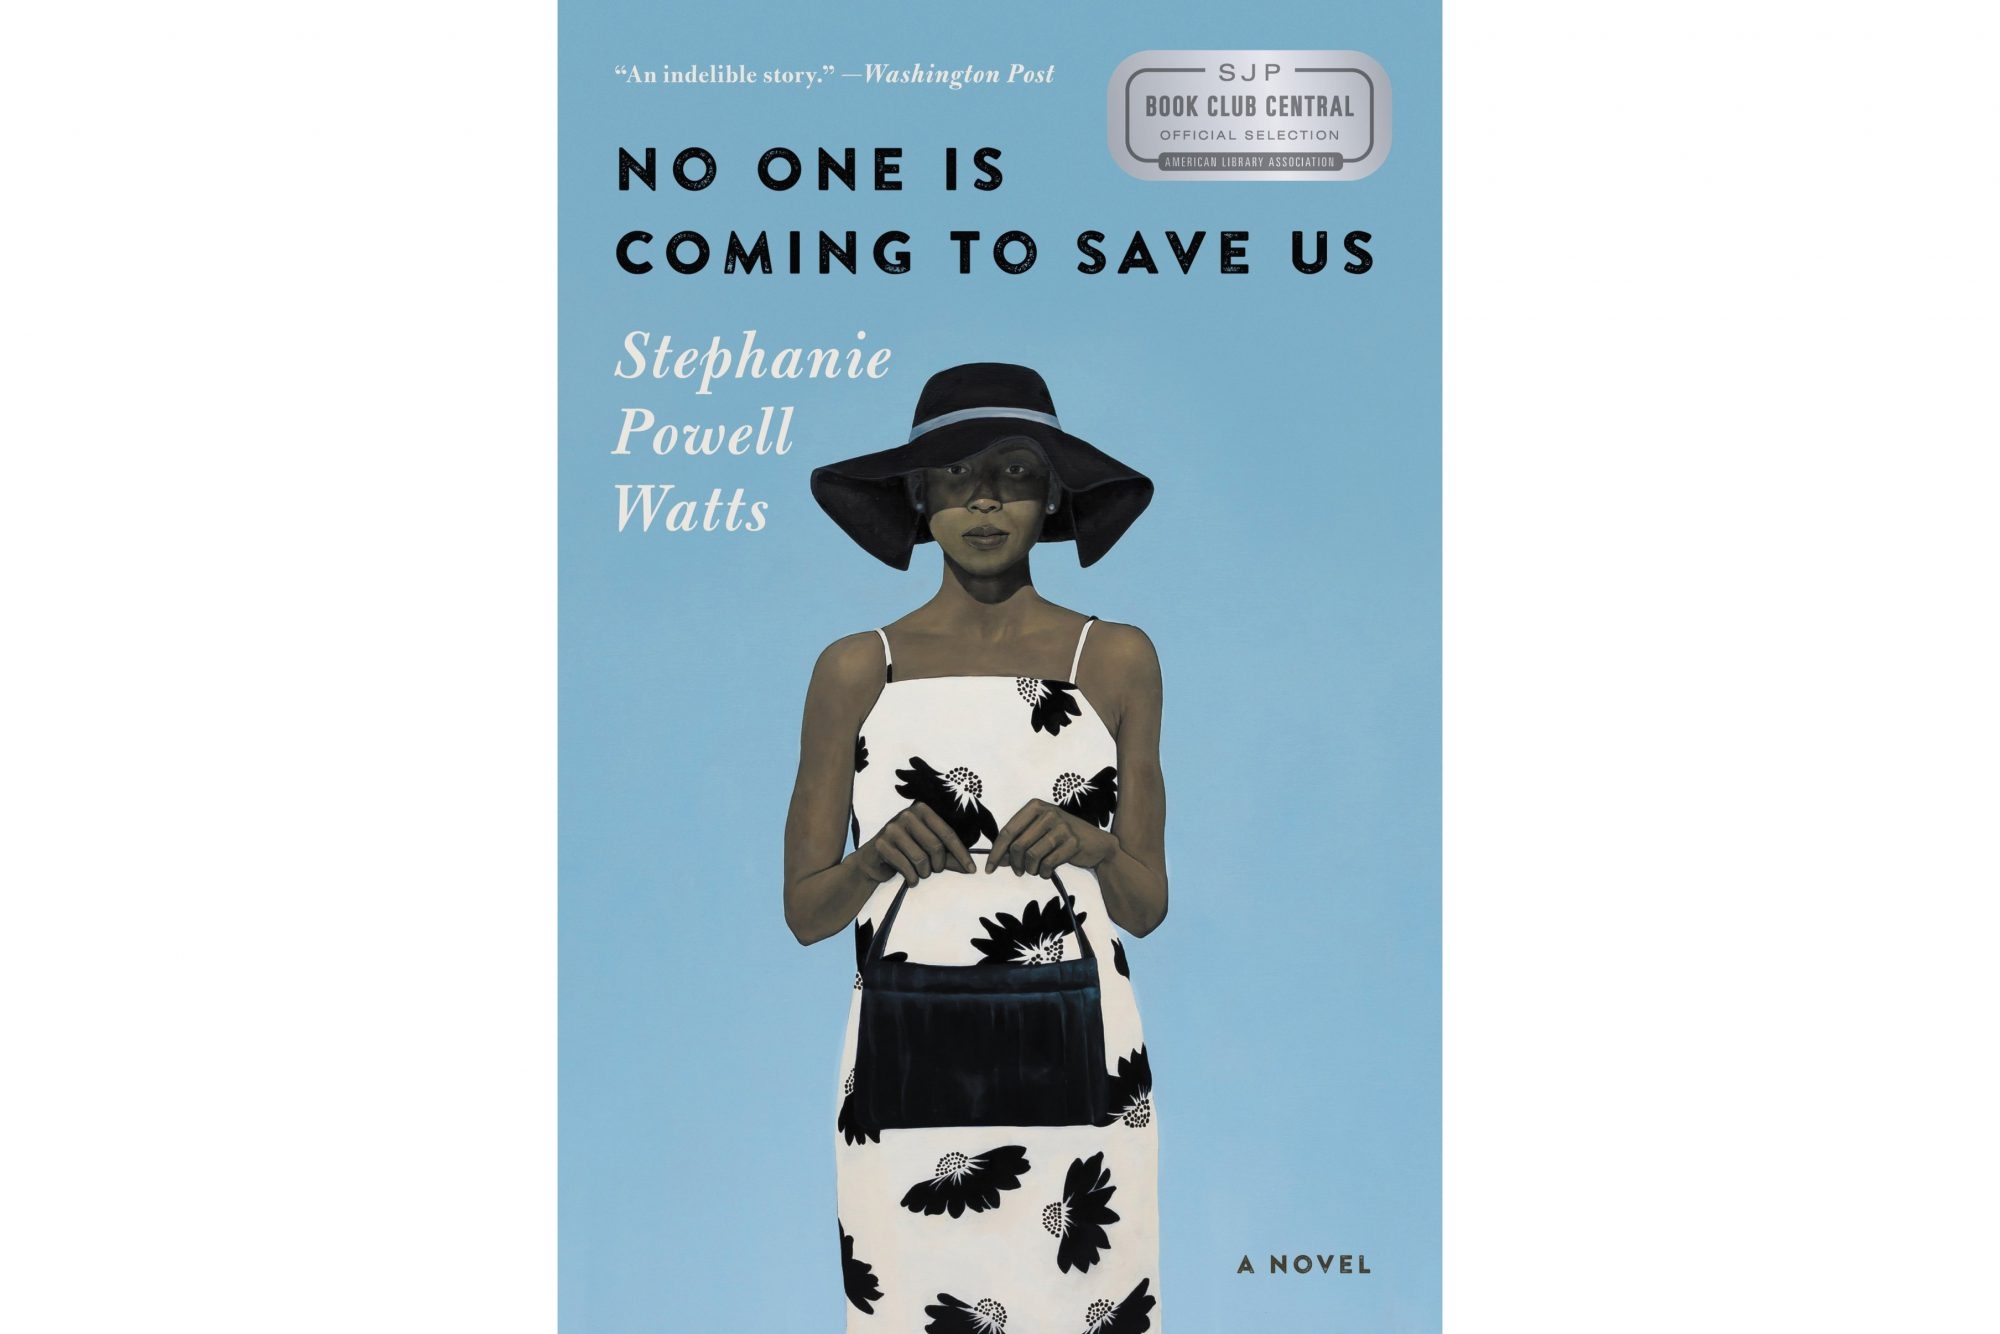 No One Is Coming to Save Us, by Stephanie Powell Watts (FB BOOKS)